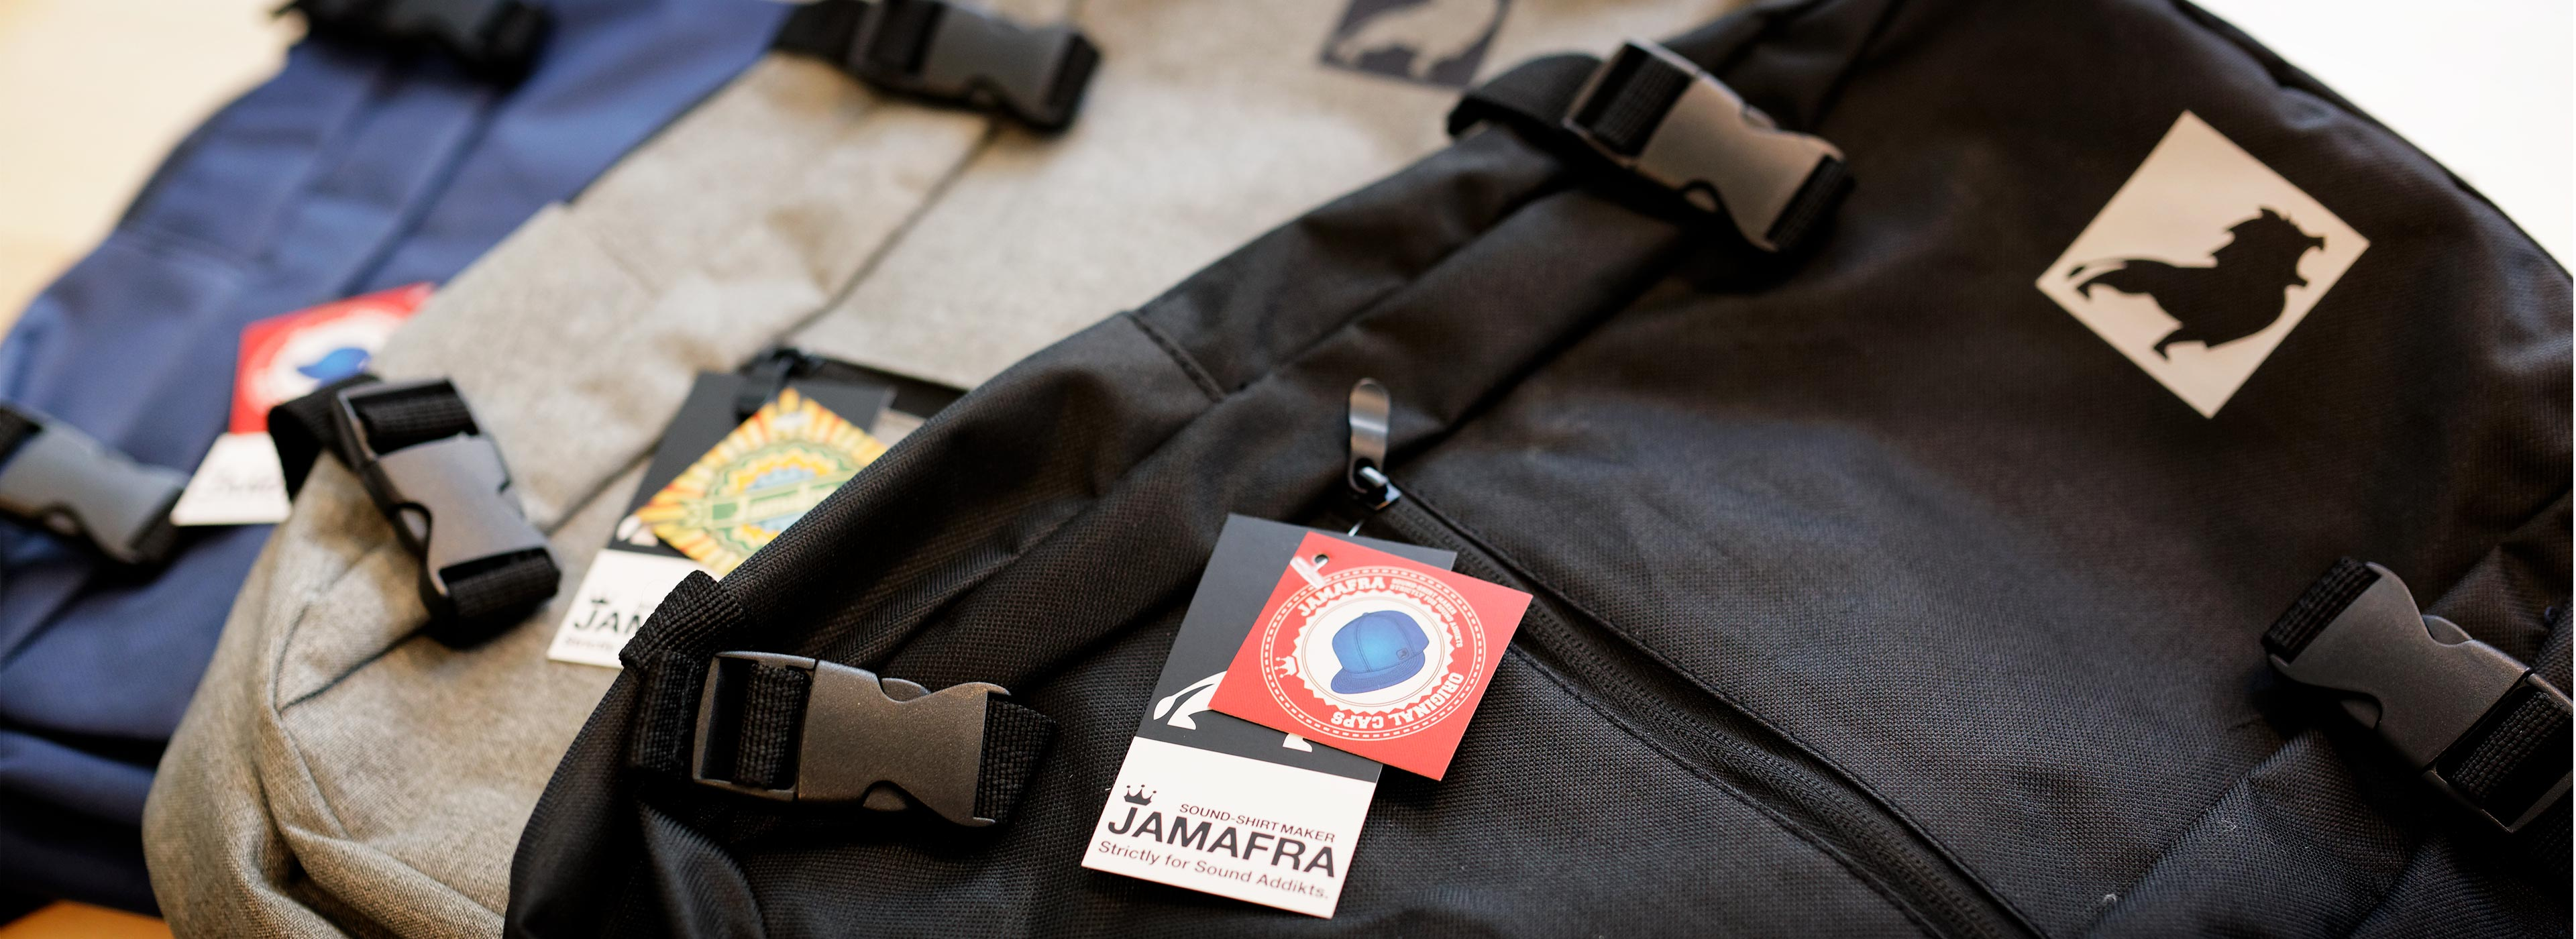 Street Bag for Sound Addikts | Jamafra